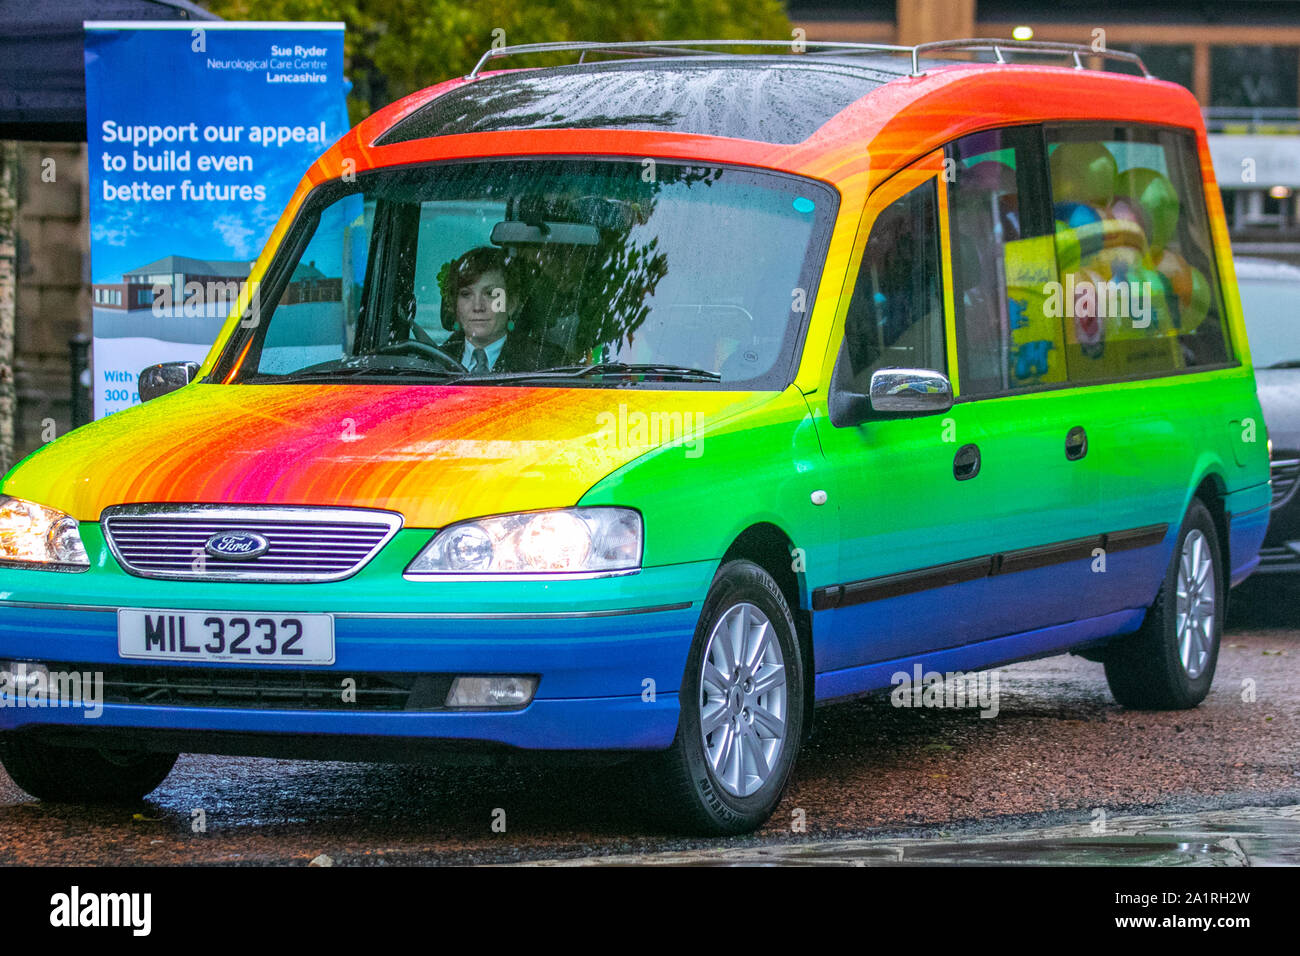 Preston Lancashire Uk Entertainment 28th Sept 2019 A Sunny Afternoon For The 8th Annual City Gay Pride Festival Held In The Flag Market Coop Funeral Care Rainbow Hearse And Casket Credit Mediaworldimages Alamylivenews